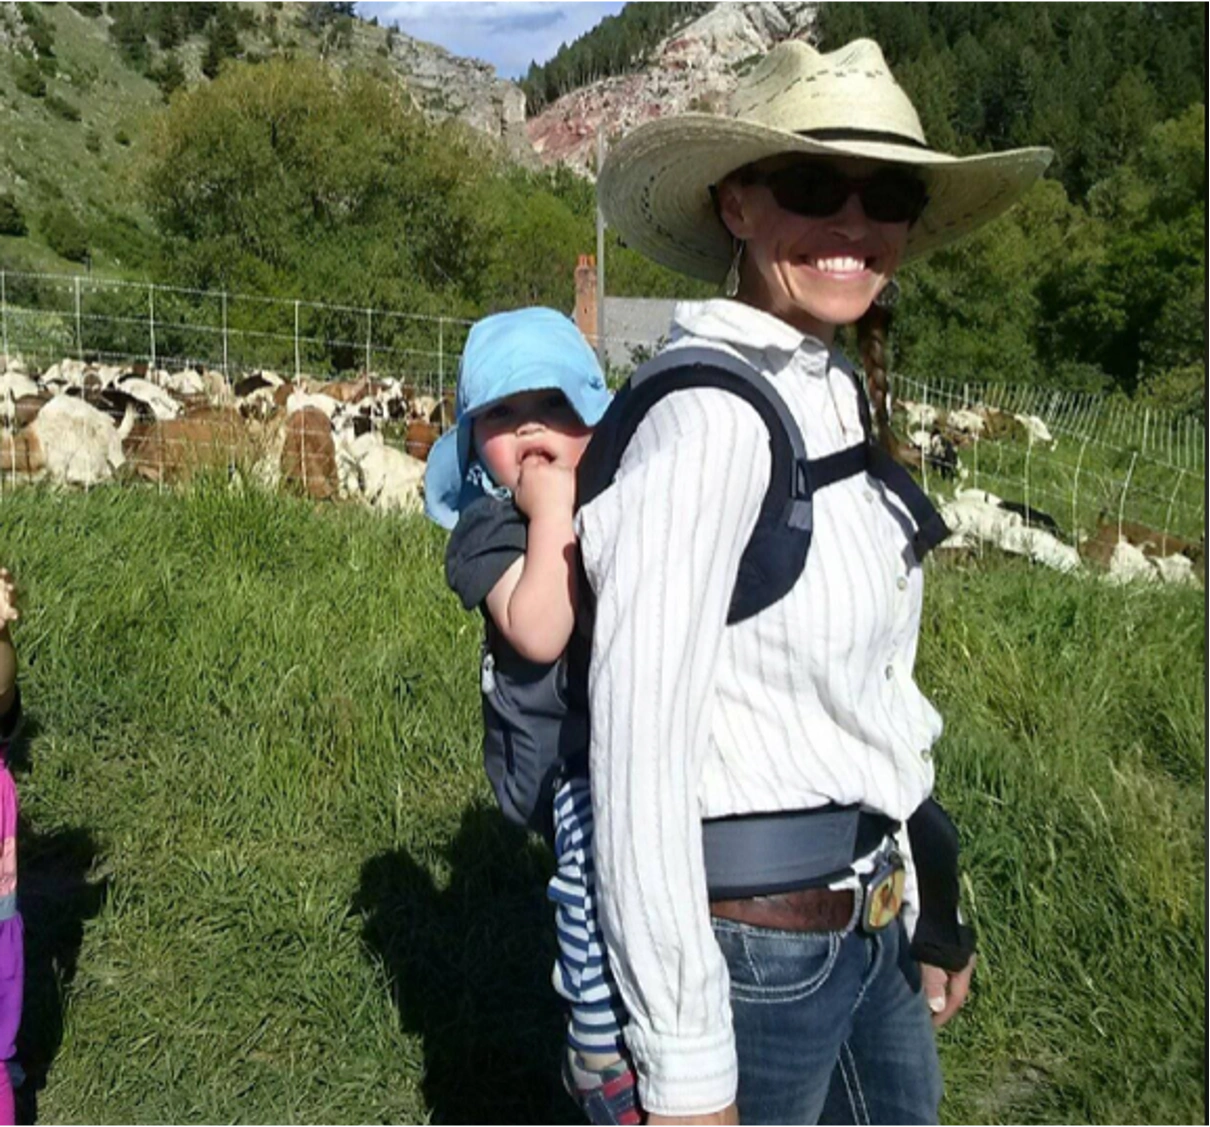 A young woman with child in a backpack and goats in the background.